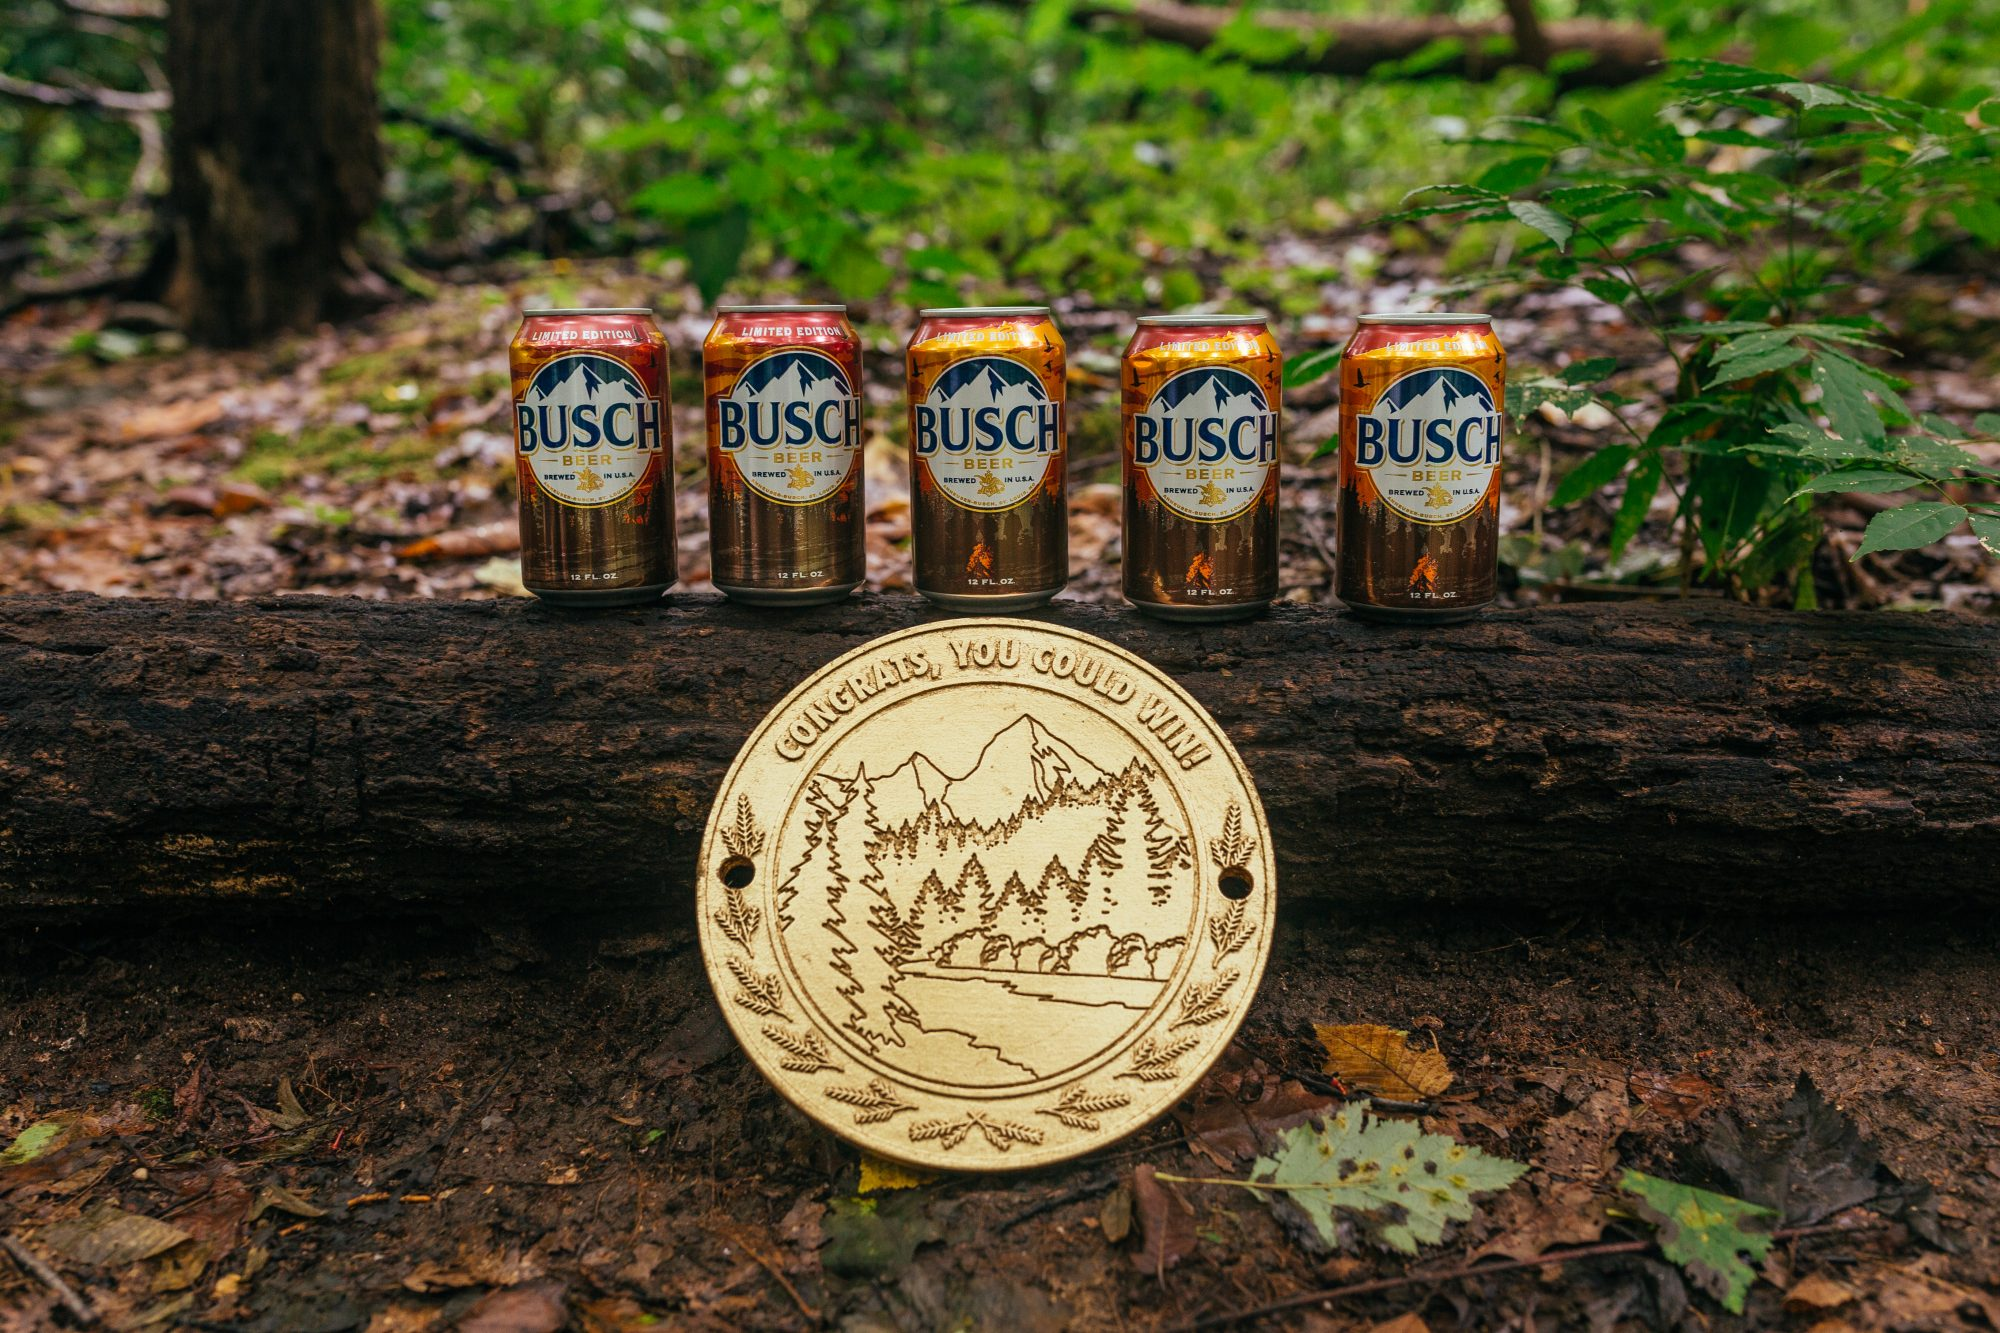 Busch Offers Free Beer for a Year to Anyone Who Can Find These Medallions Hidden in National Forests